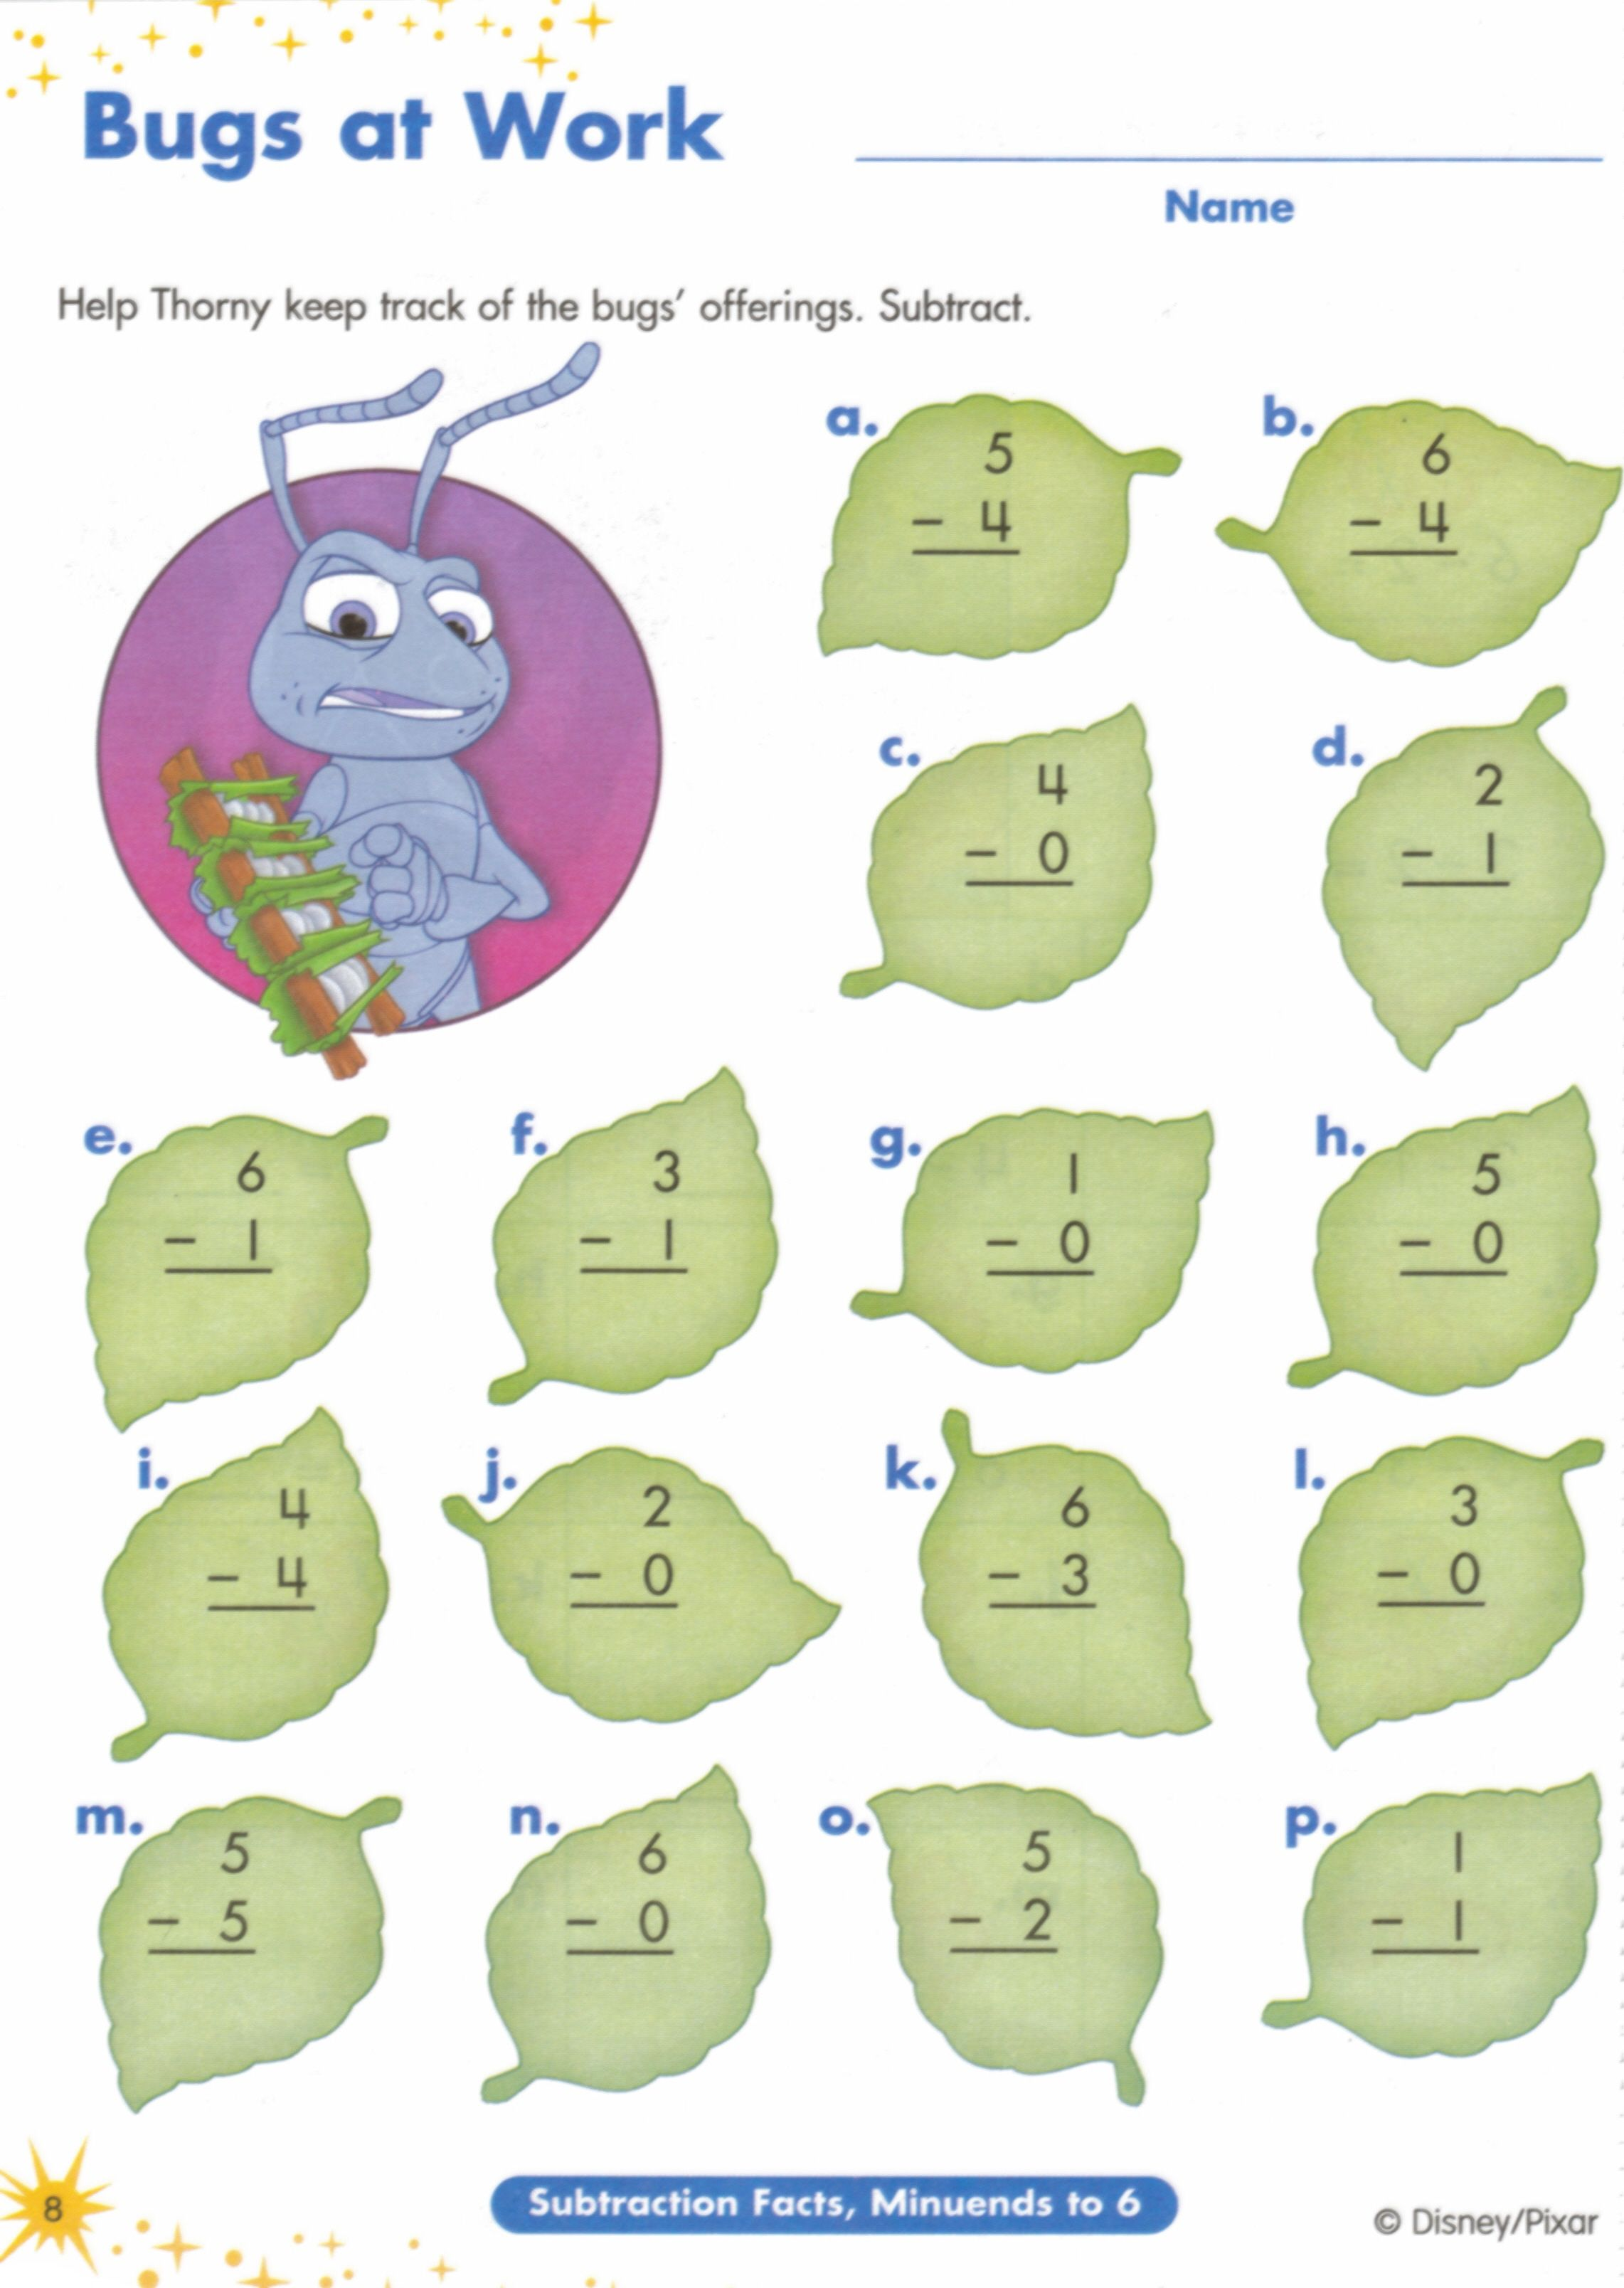 Weirdmailus  Surprising  Images About Worksheets On Pinterest  Fun Facts For Kids  With Lovable  Images About Worksheets On Pinterest  Fun Facts For Kids Earth Day Worksheets And Jungles With Amazing Abc Tracing Worksheets Free Also Worksheets Converting Fractions To Decimals In Addition Mathematics Multiplication Worksheets And Grade  Geometry Worksheets As Well As Worksheets On Transport Additionally Free Decimal Division Worksheets From Pinterestcom With Weirdmailus  Lovable  Images About Worksheets On Pinterest  Fun Facts For Kids  With Amazing  Images About Worksheets On Pinterest  Fun Facts For Kids Earth Day Worksheets And Jungles And Surprising Abc Tracing Worksheets Free Also Worksheets Converting Fractions To Decimals In Addition Mathematics Multiplication Worksheets From Pinterestcom